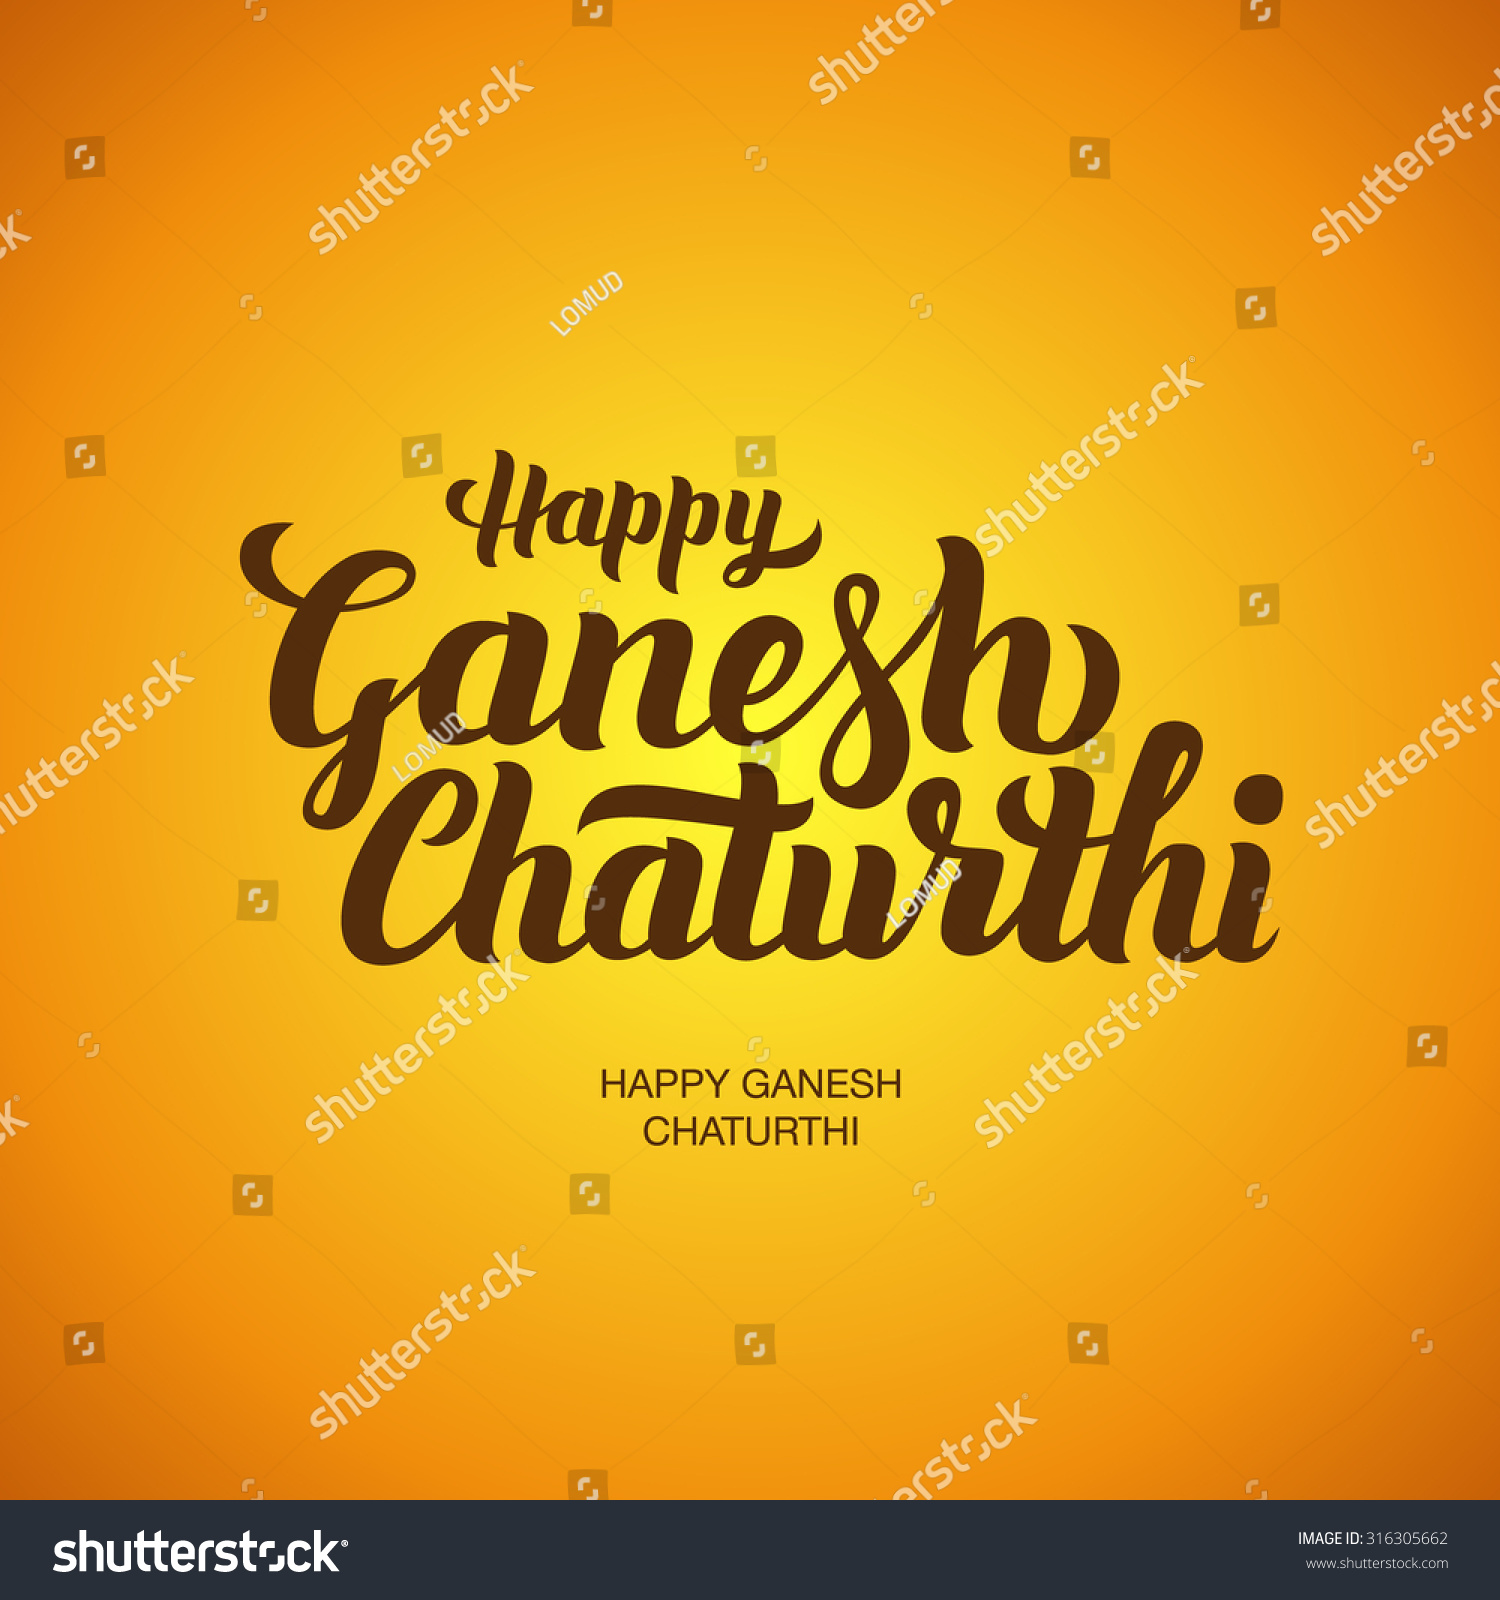 Happy ganesh chaturthi handlettering indian festival stock vector happy ganesh chaturthi hand lettering indian festival greeting card handmade vector calligraphy background m4hsunfo